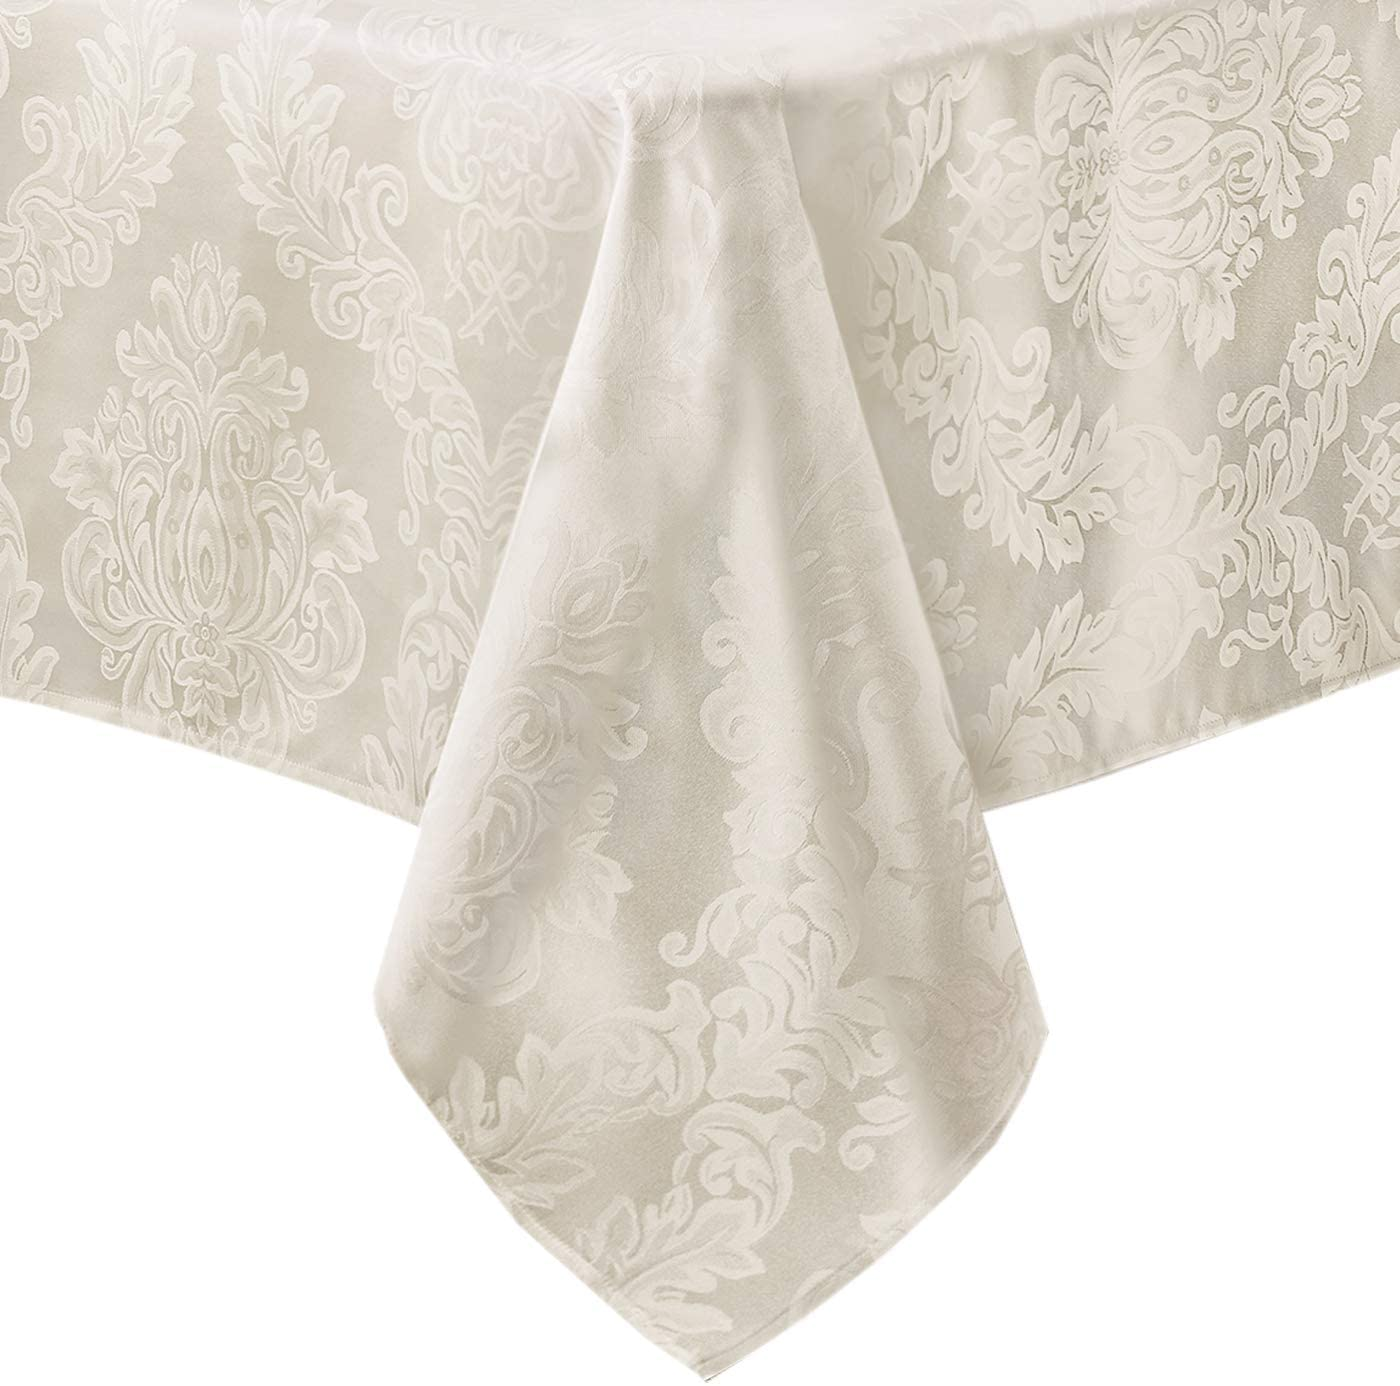 Newbridge Barcelona Luxury Damask Fabric Tablecloth, 100% Polyester, No Iron, Soil Resistant Dining Room, Party Banquet and Holiday Tablecloth, 52 Inch x 70 Inch Oblong/Rectangle, Antique White